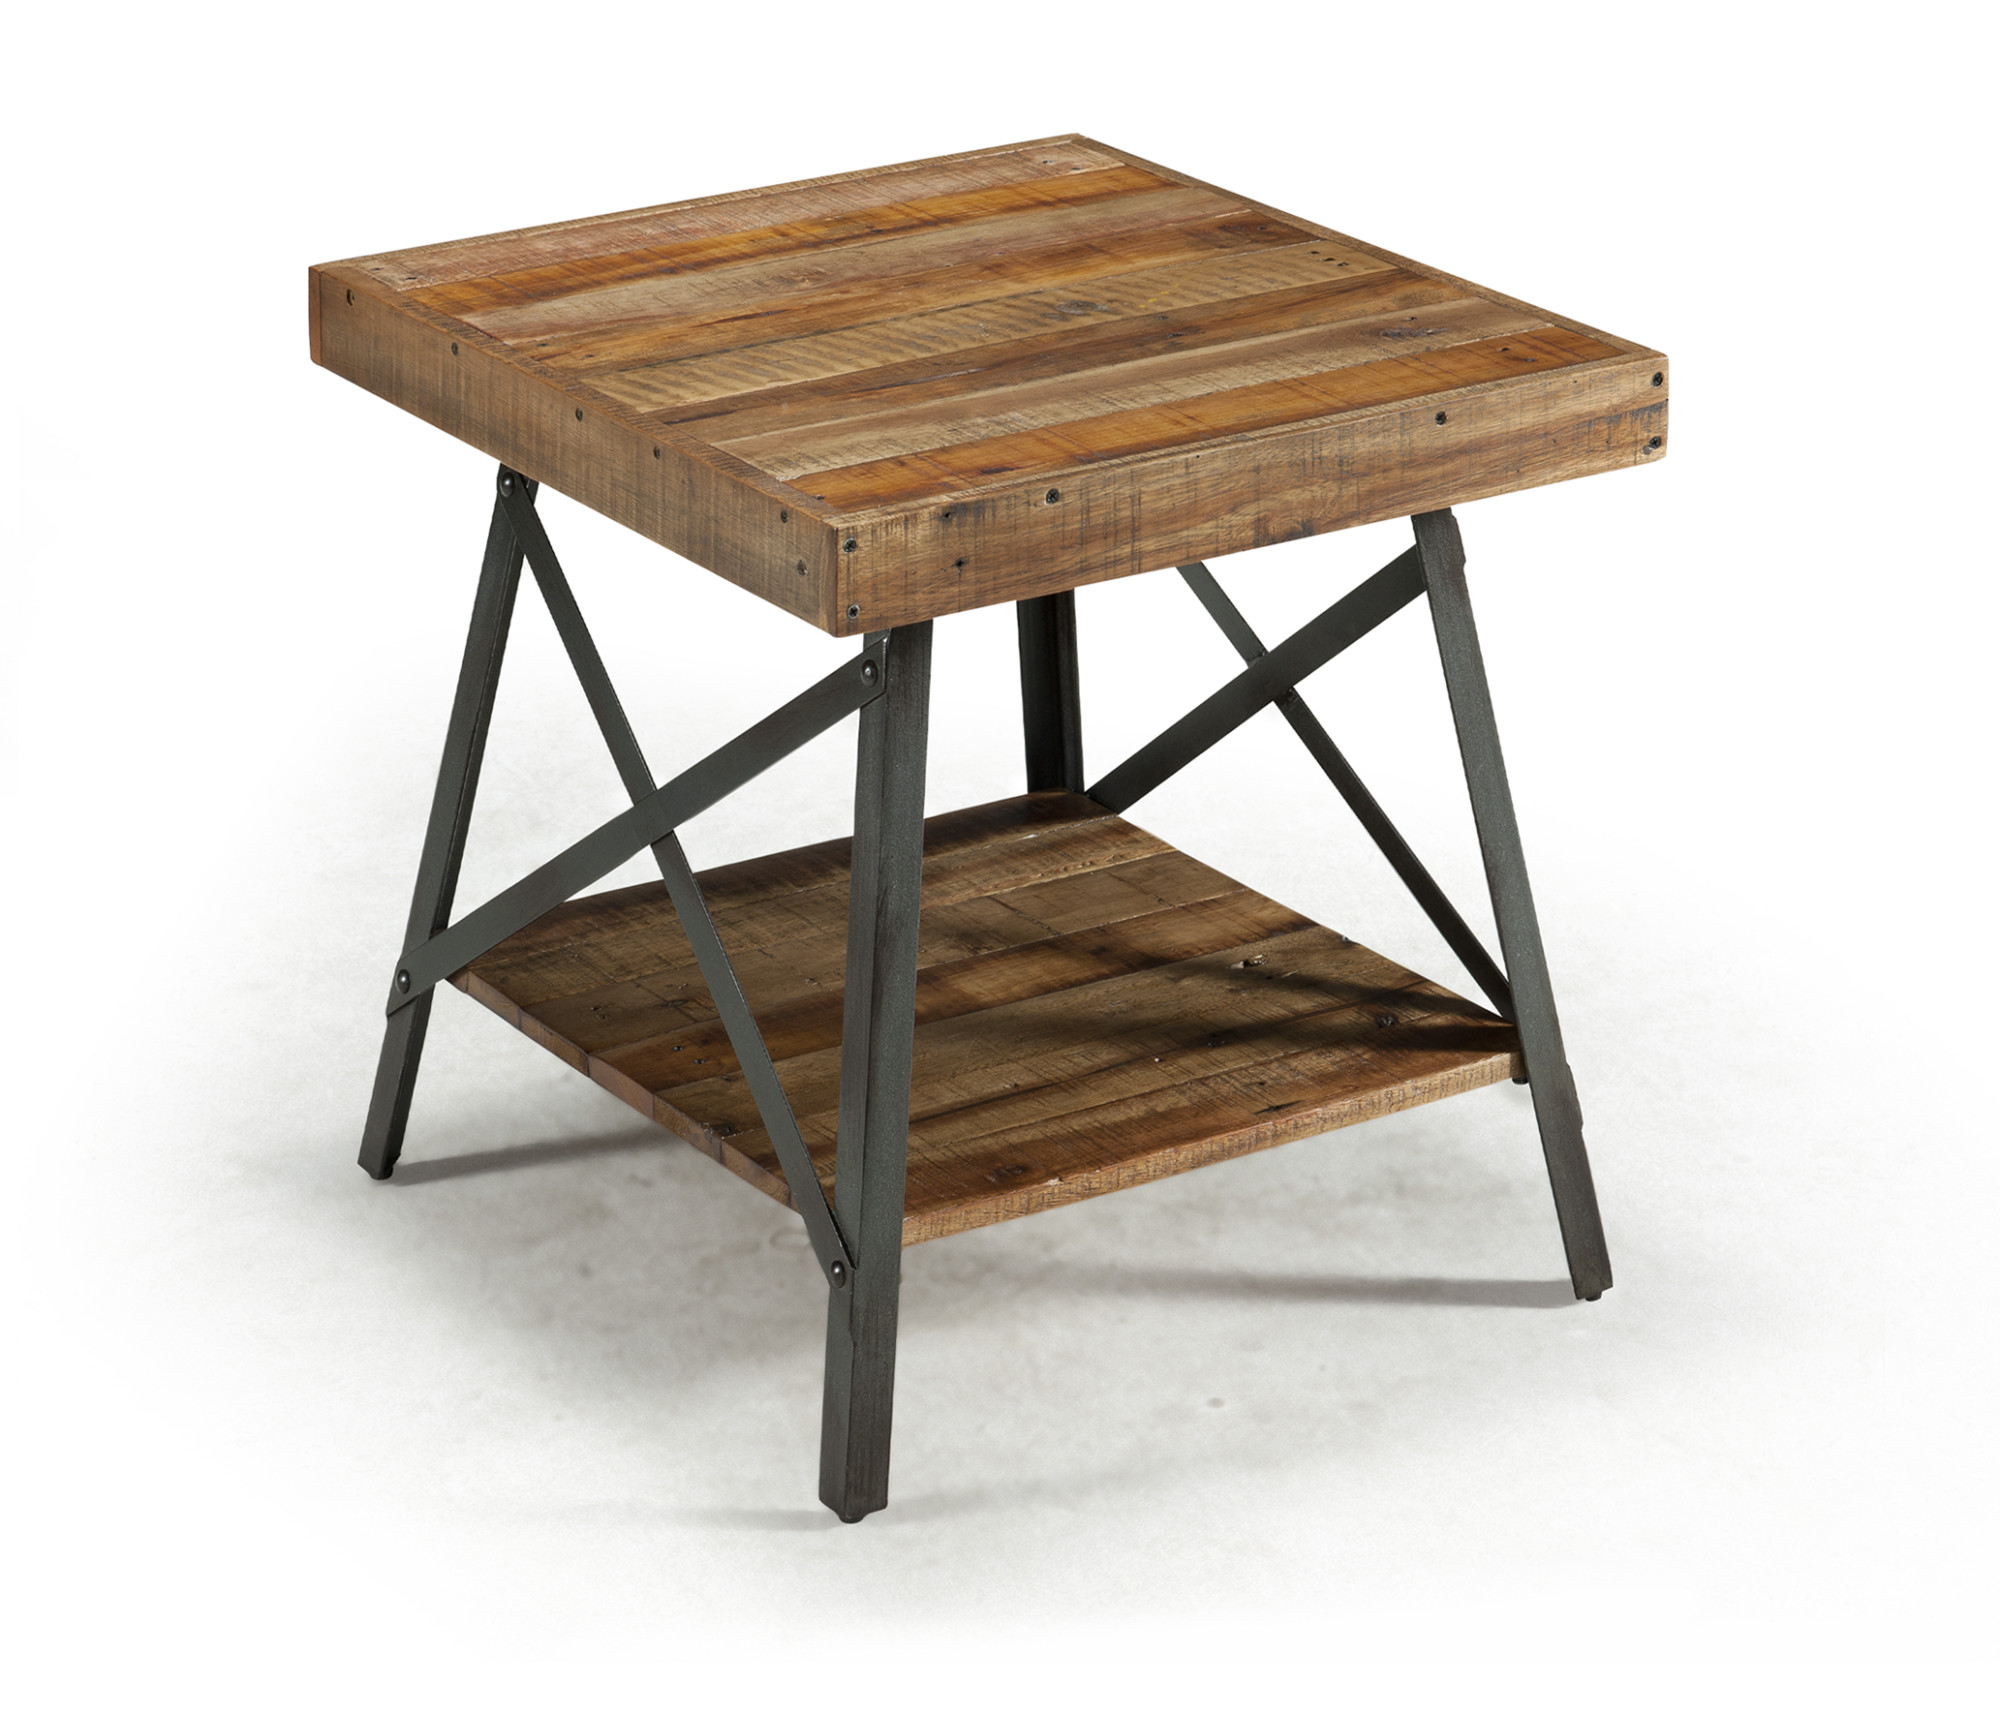 Emerald Home Chandler Rustic Wood End Table With Solid Wood Top, Metal  Base, And